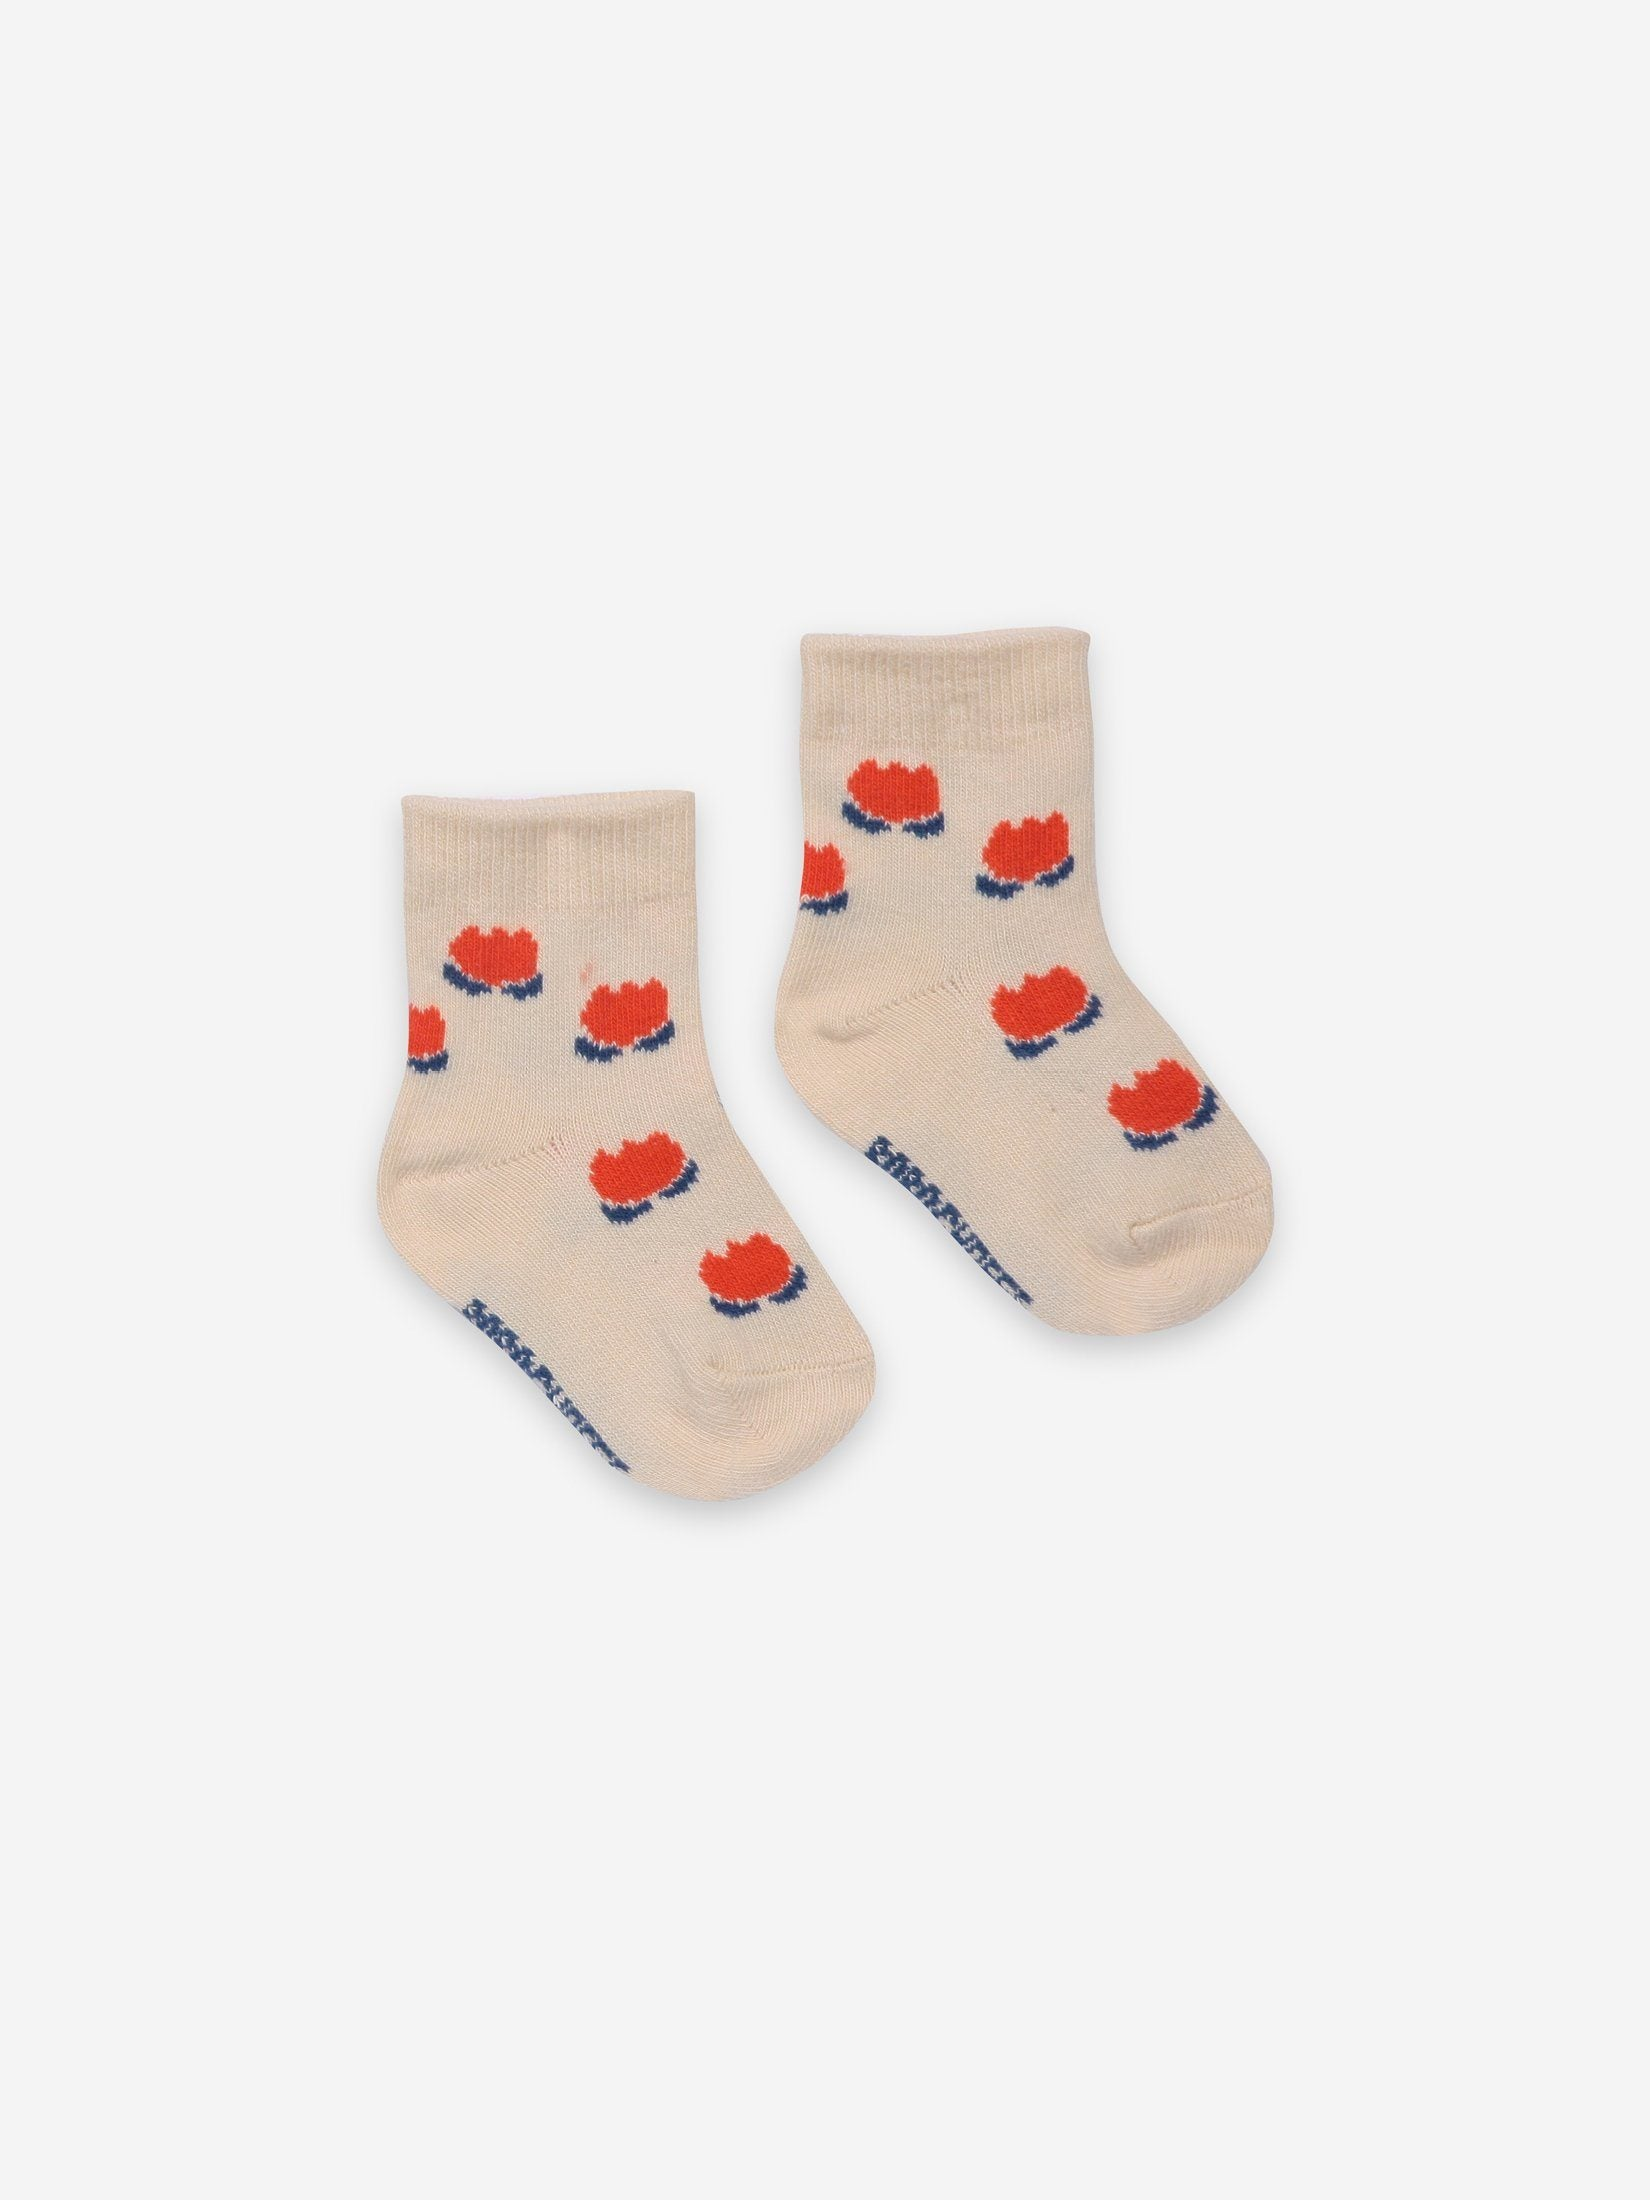 Chocolate Flowers White Baby Socks - Zirkuss